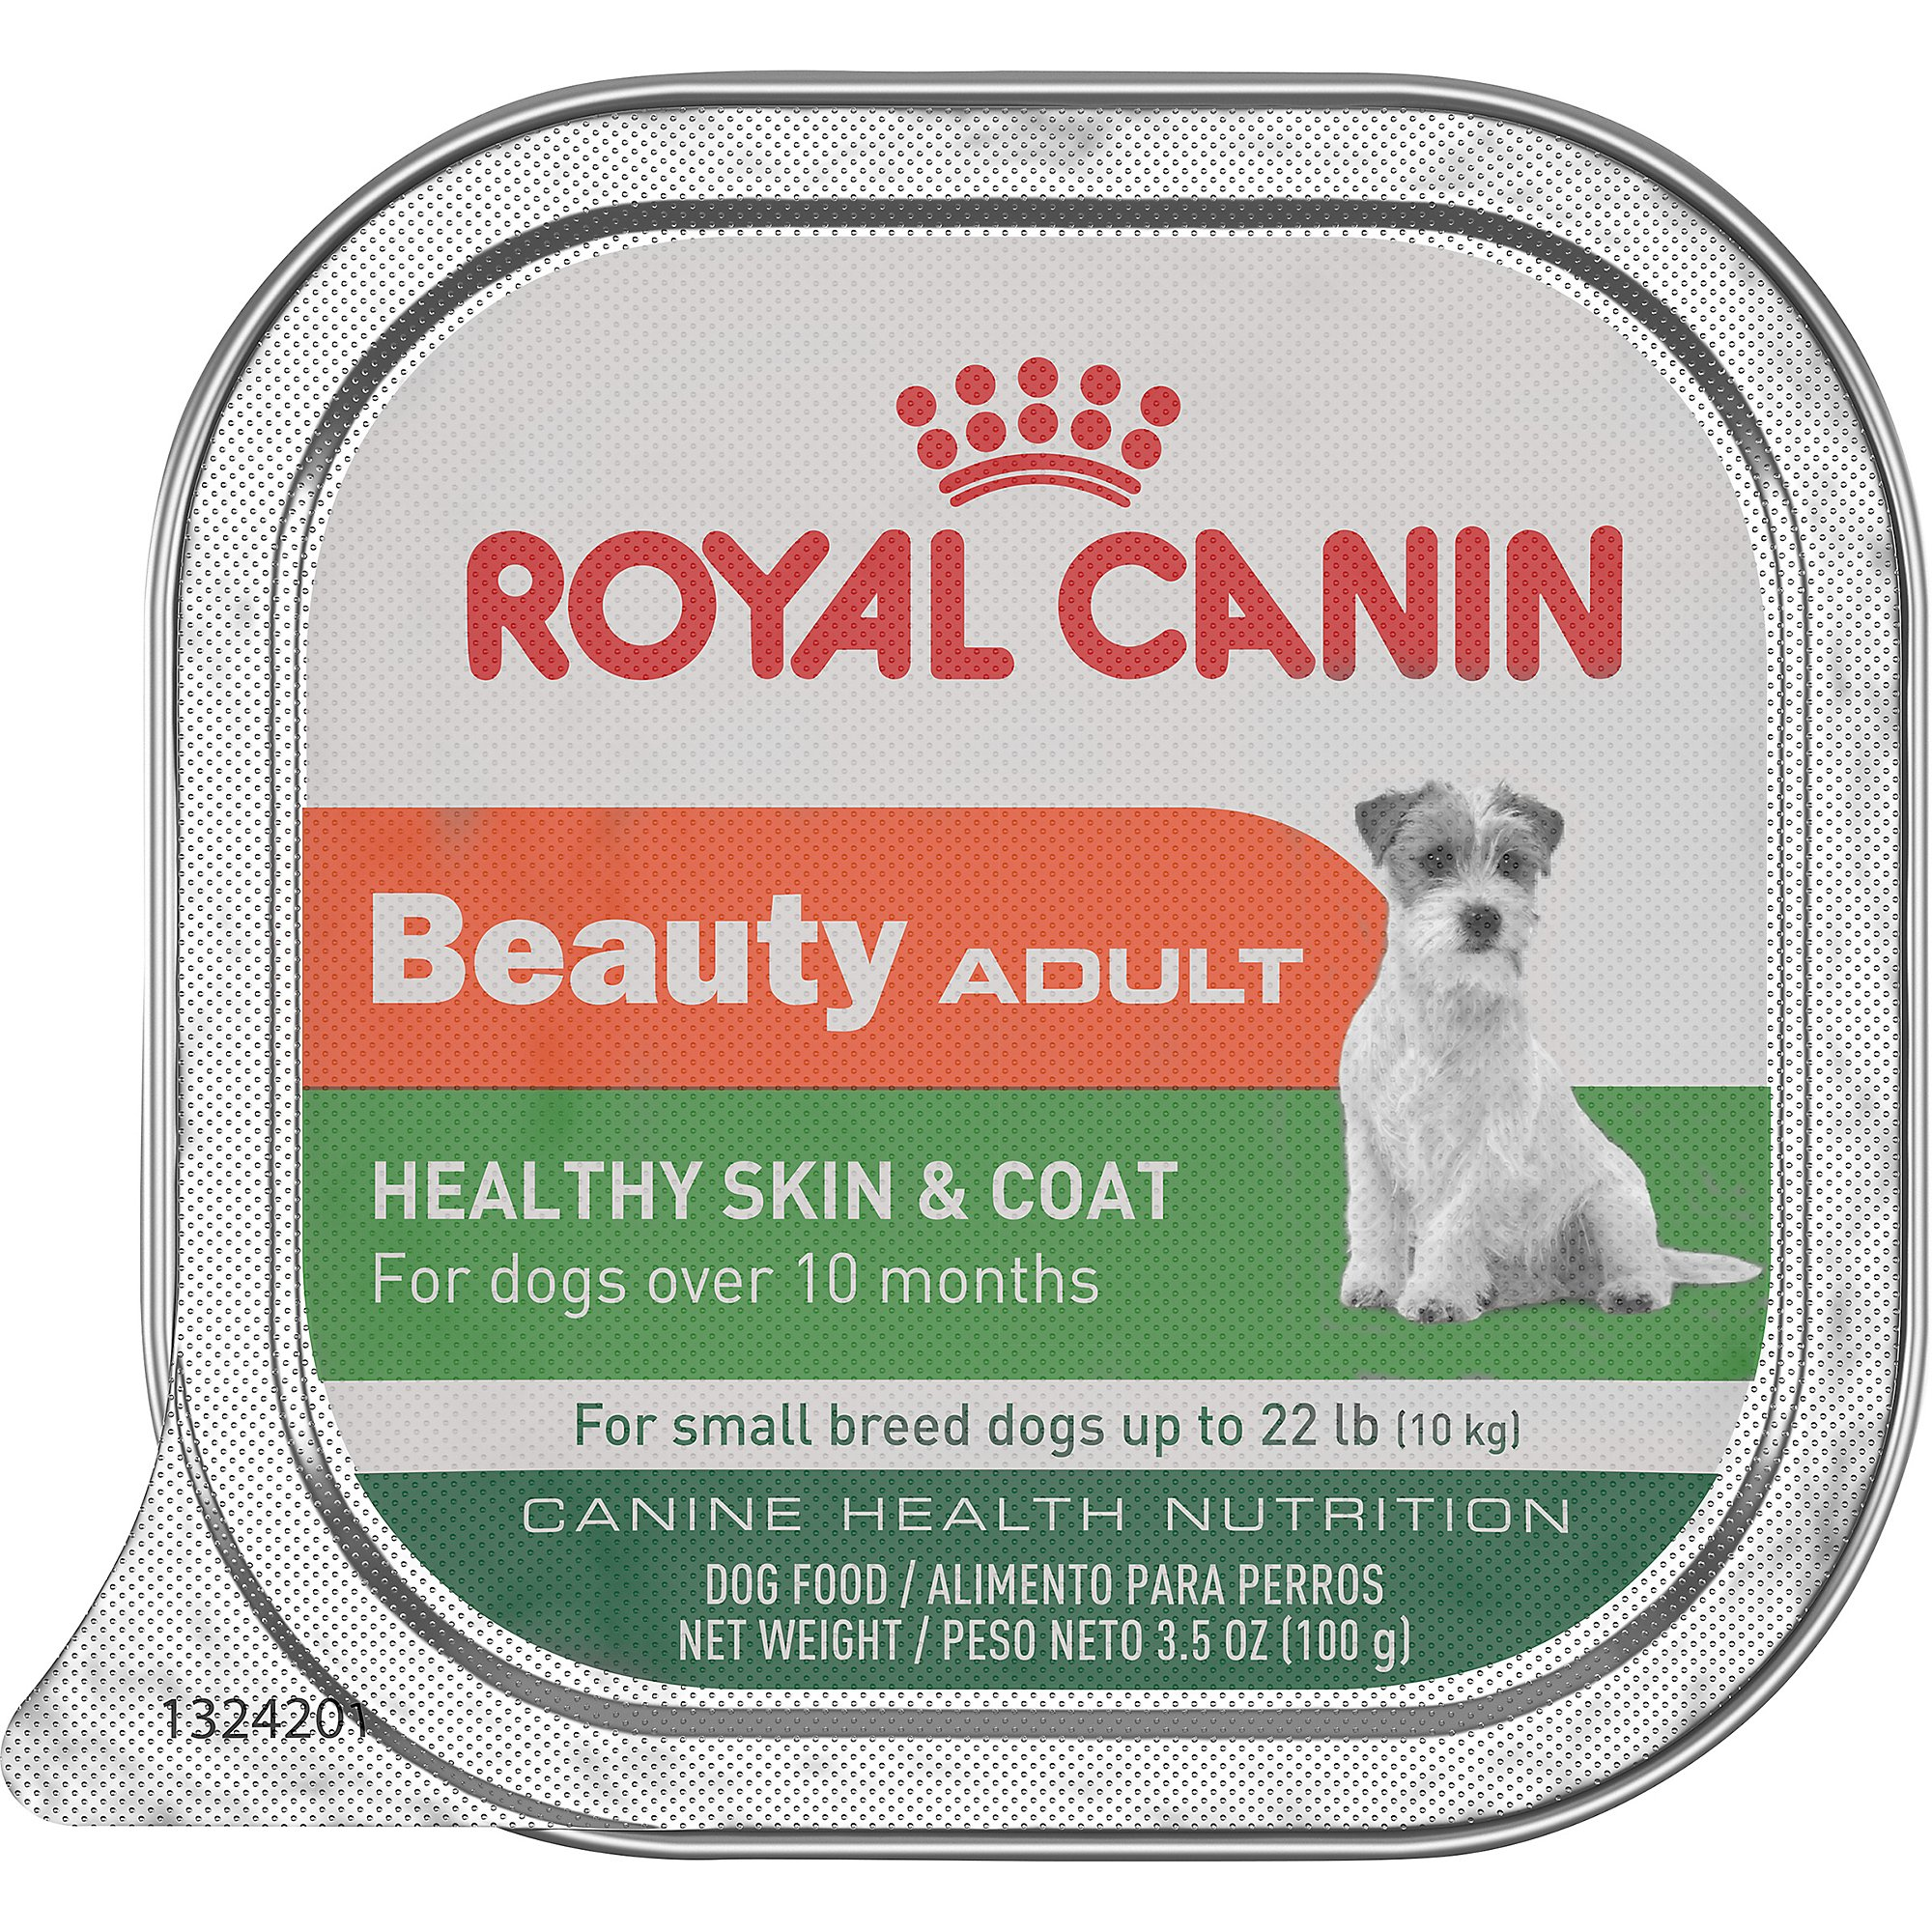 Royal Canin Canine Health Nutrition Beauty Adult Tray Dog Food, 3.5 oz (Pack of 24) by Royal Canin